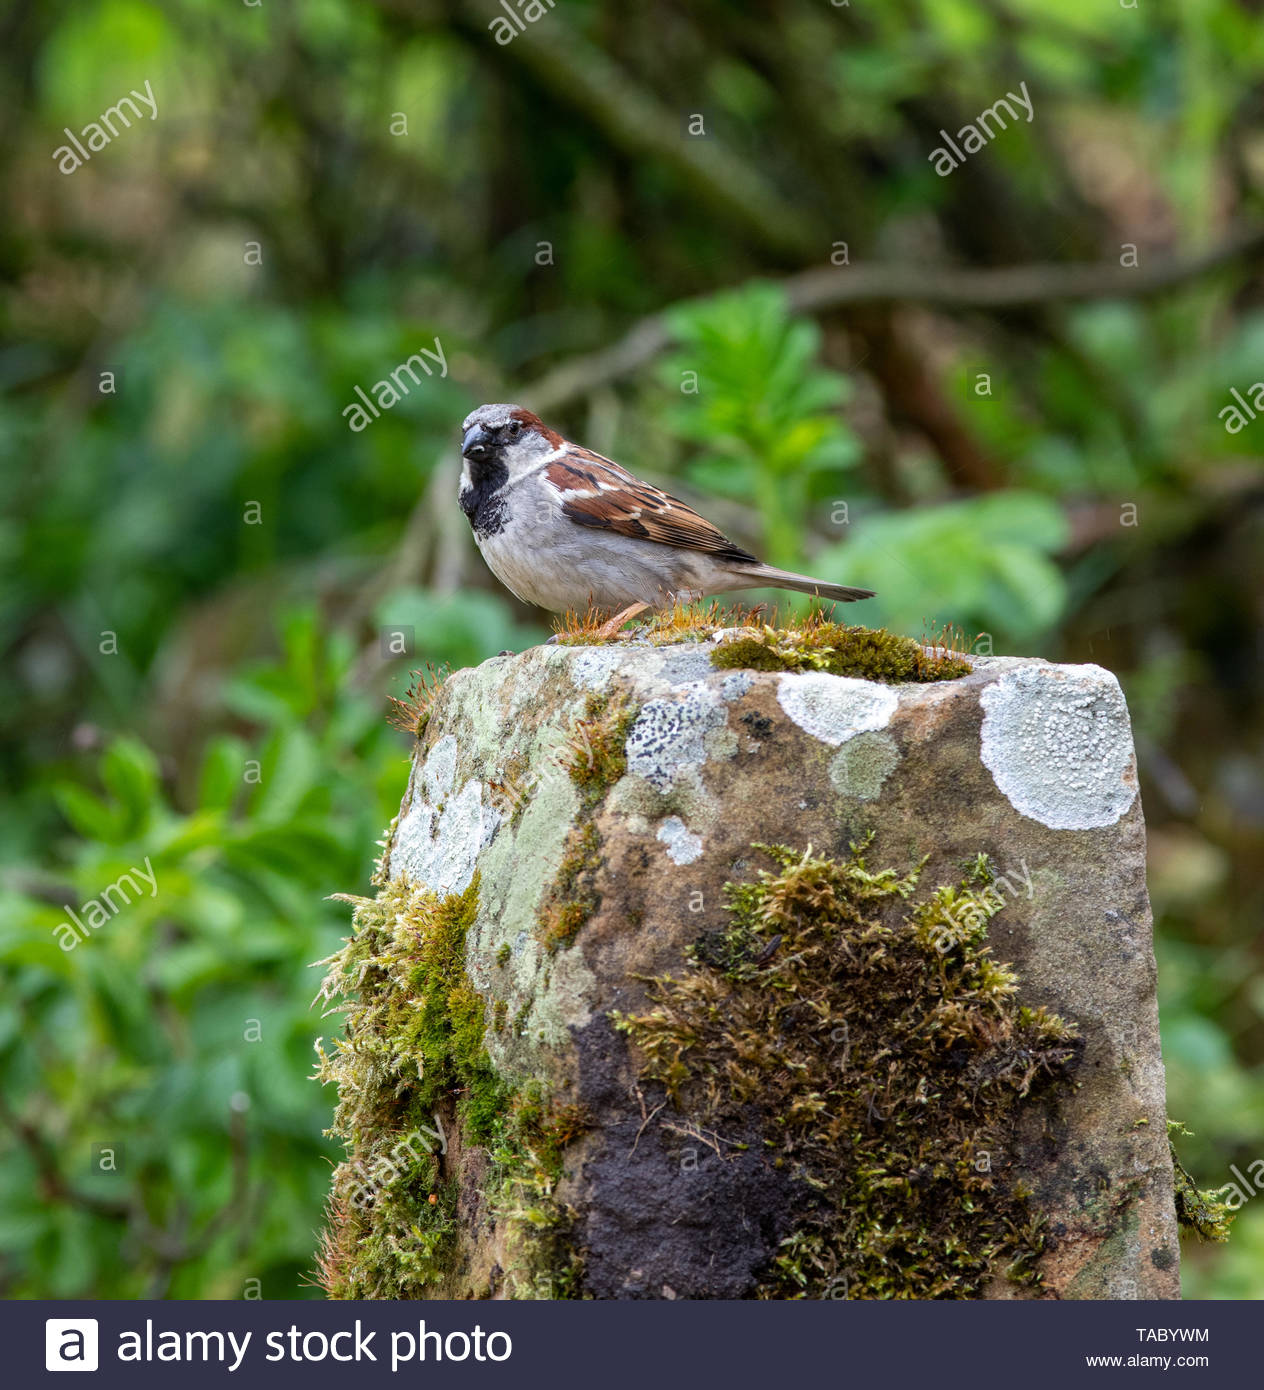 House Sparrow (Passer domesticus) perched on moss covered sandstone Stock Photo